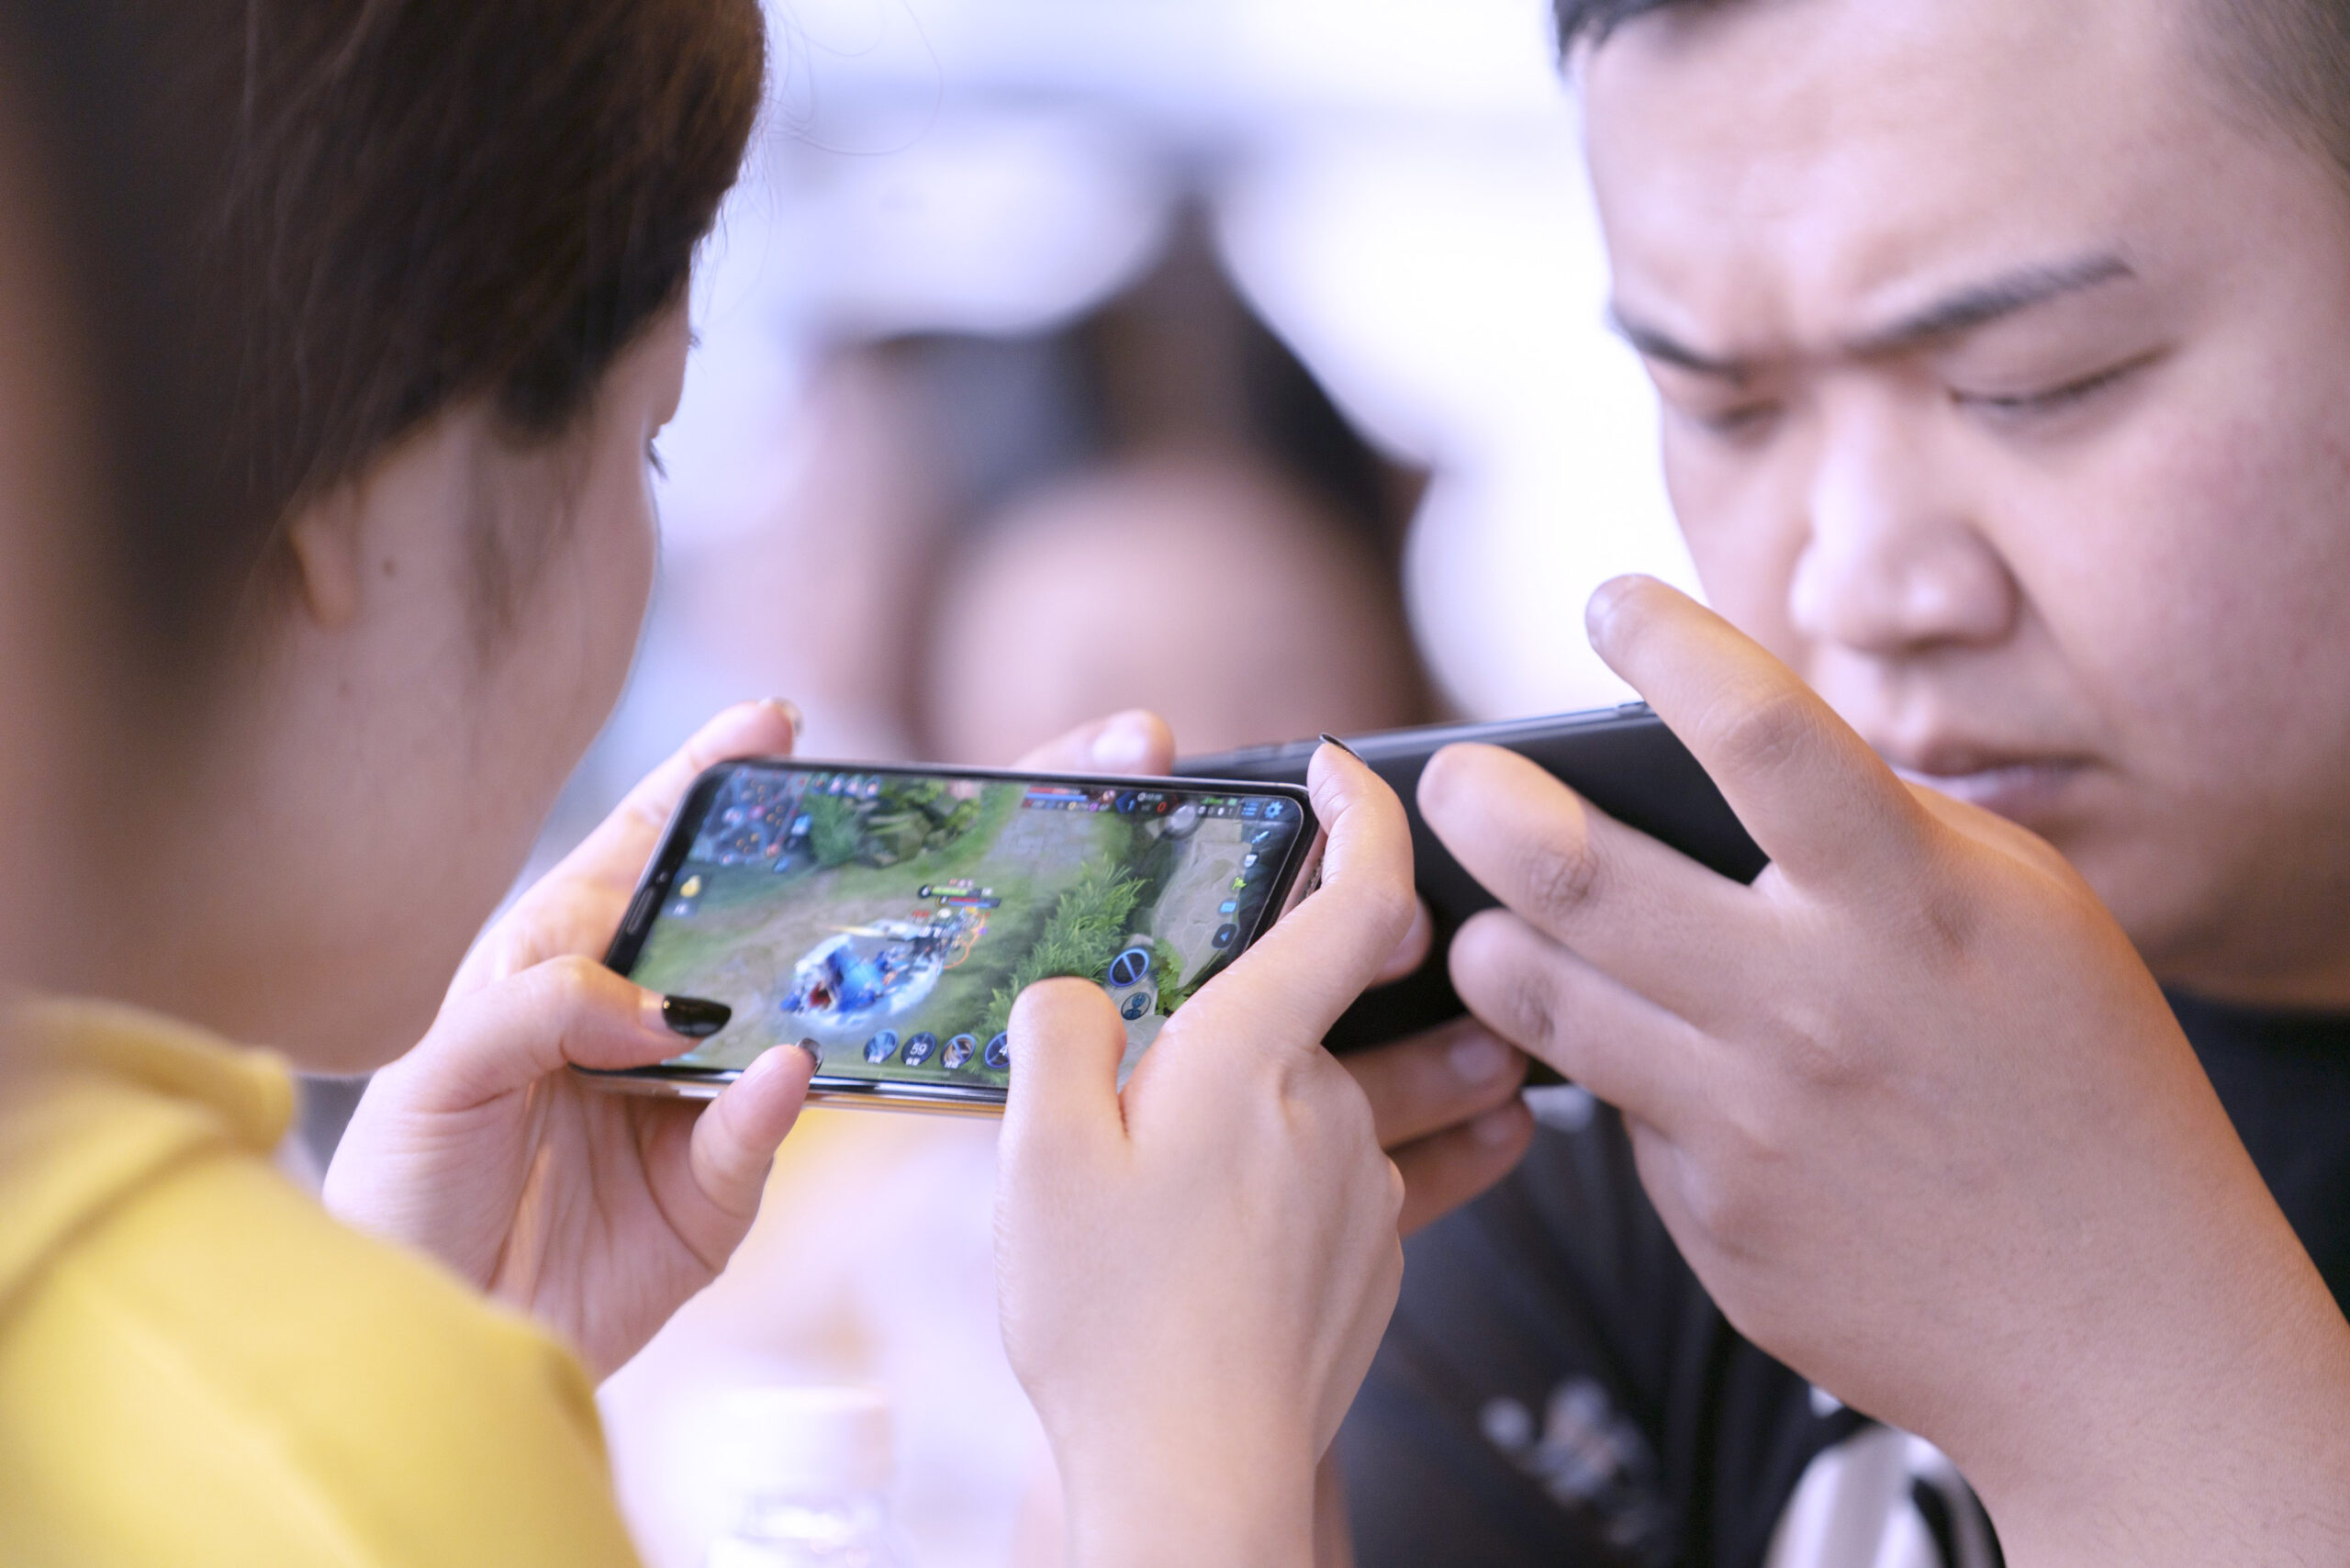 Mobile phone online games are rapidly entering the developing stage